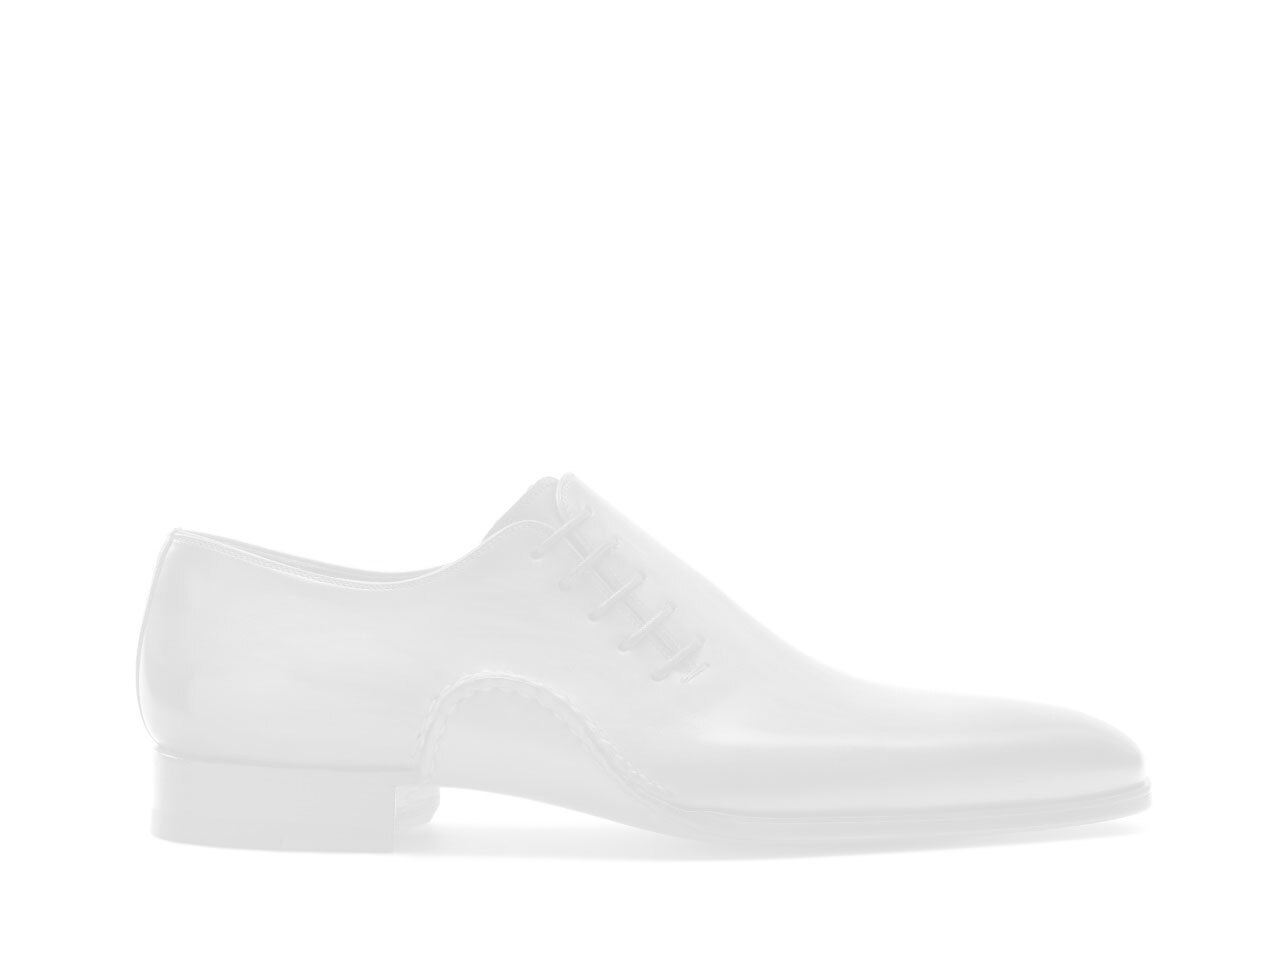 Sole of the Magnanni Reina II White Men's Sneakers